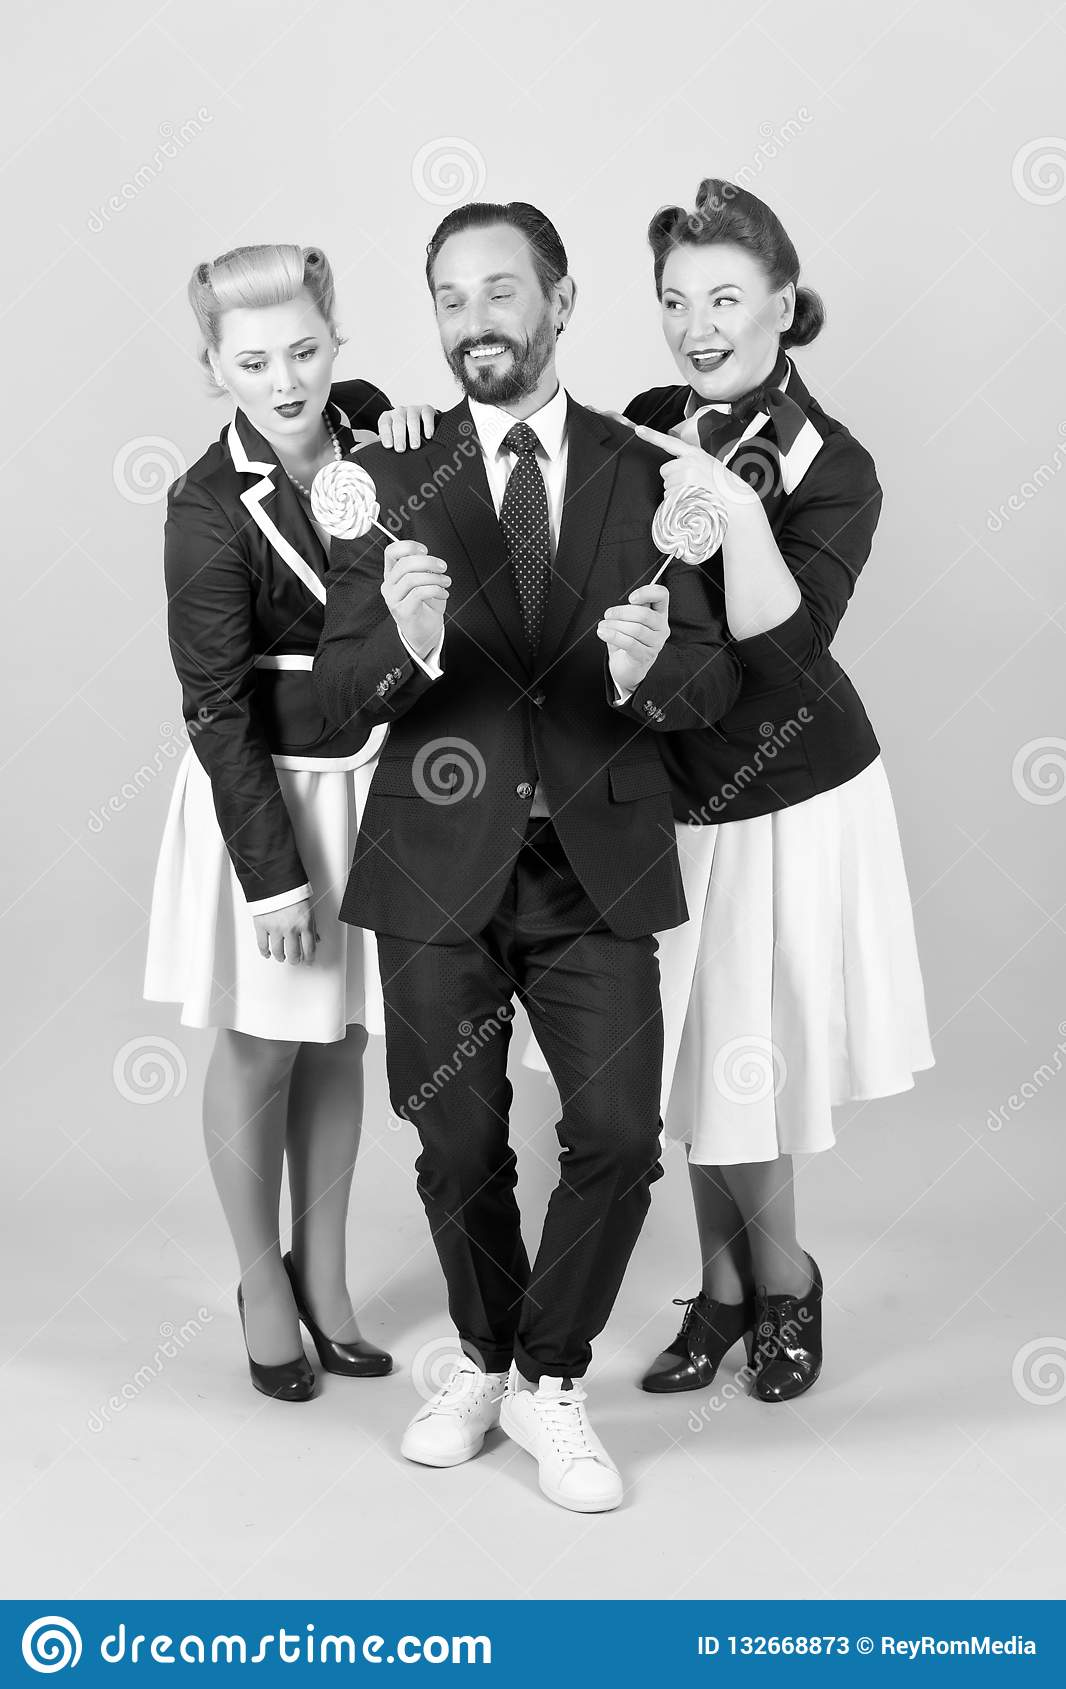 Candy man with two women and lollipops on gray background in stuido